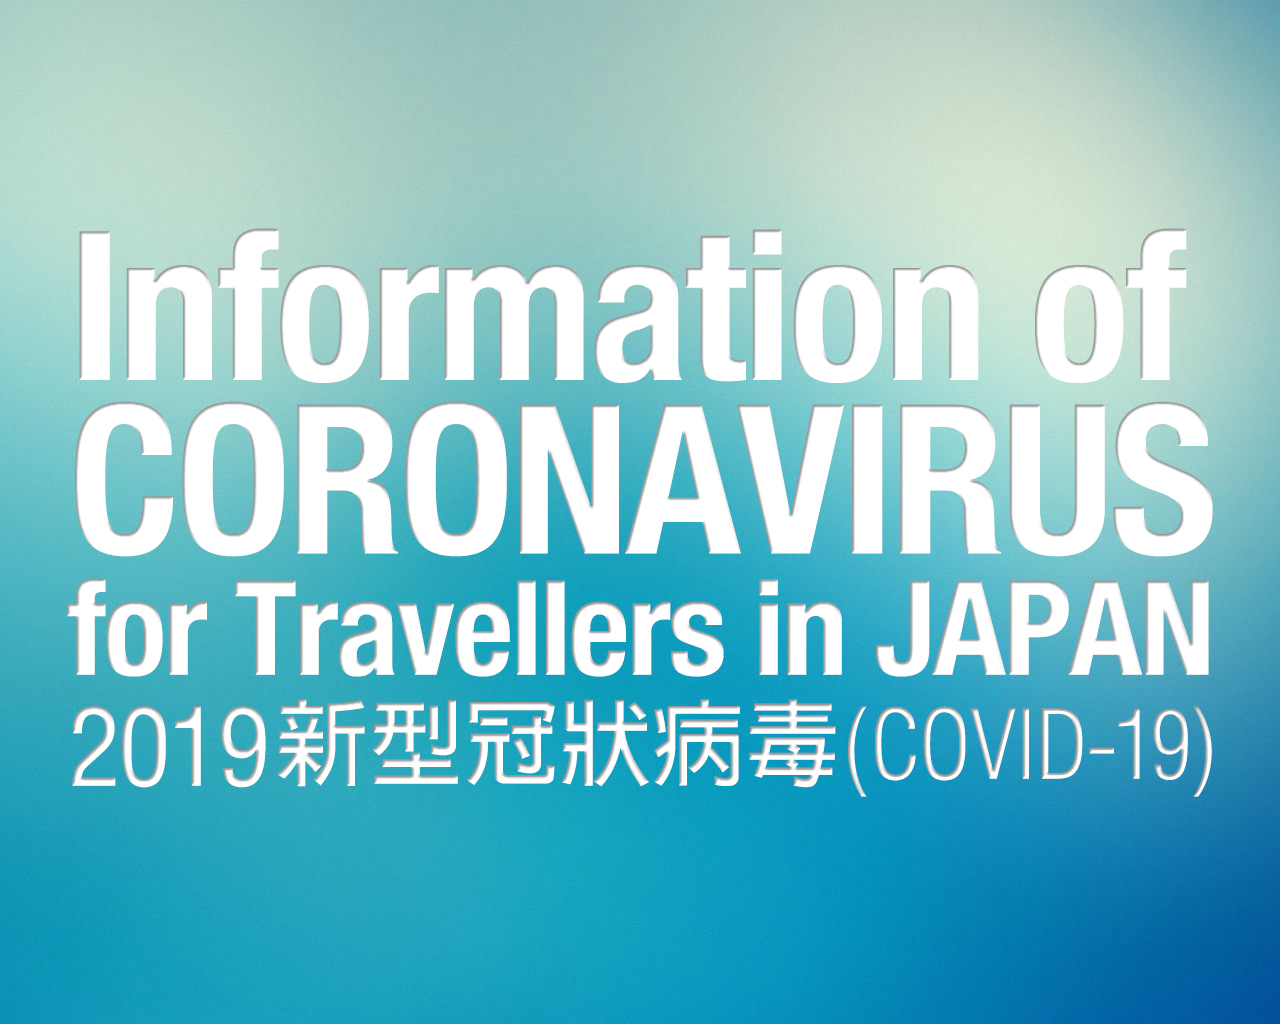 Multilingual information from official channels for foreigners in Japan about COVID-19